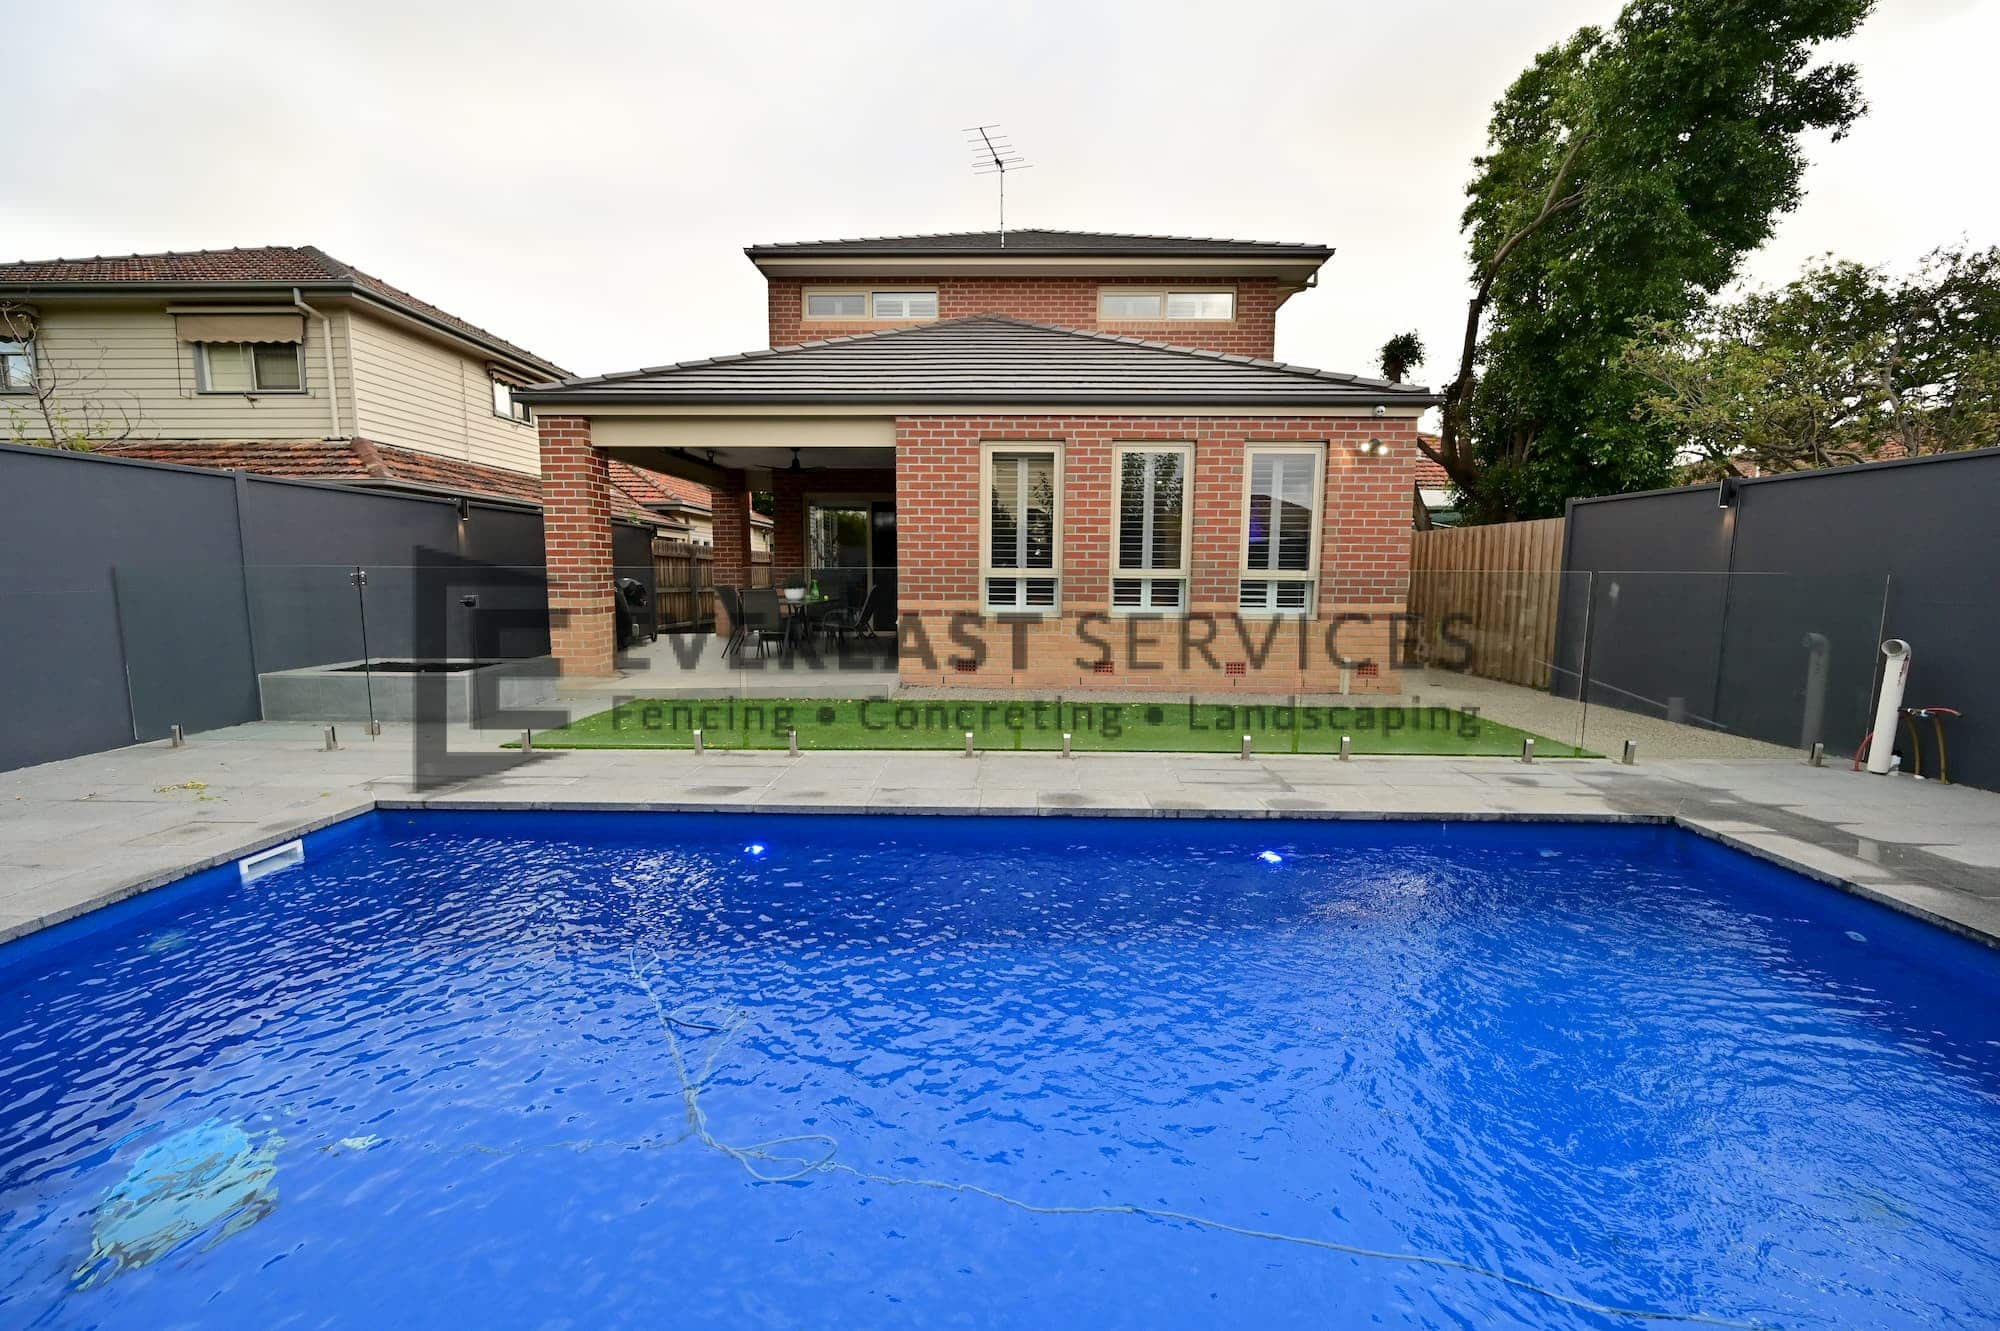 L284 - Yarraville - Backyard Landscaping with Glass Pool Fence looking directly at the house